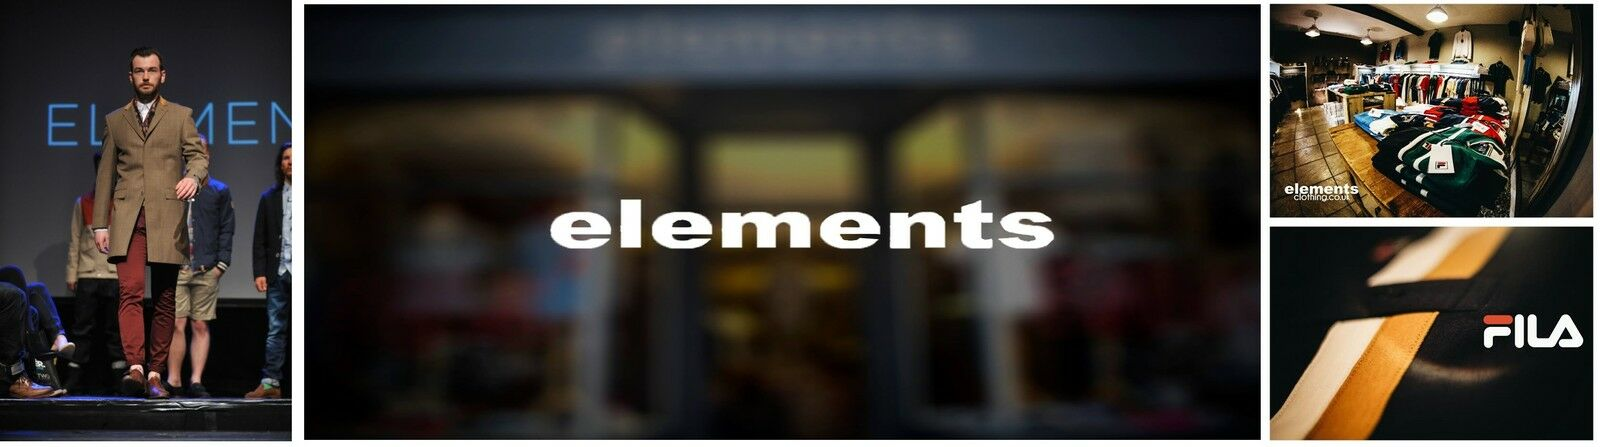 elementsmenswear